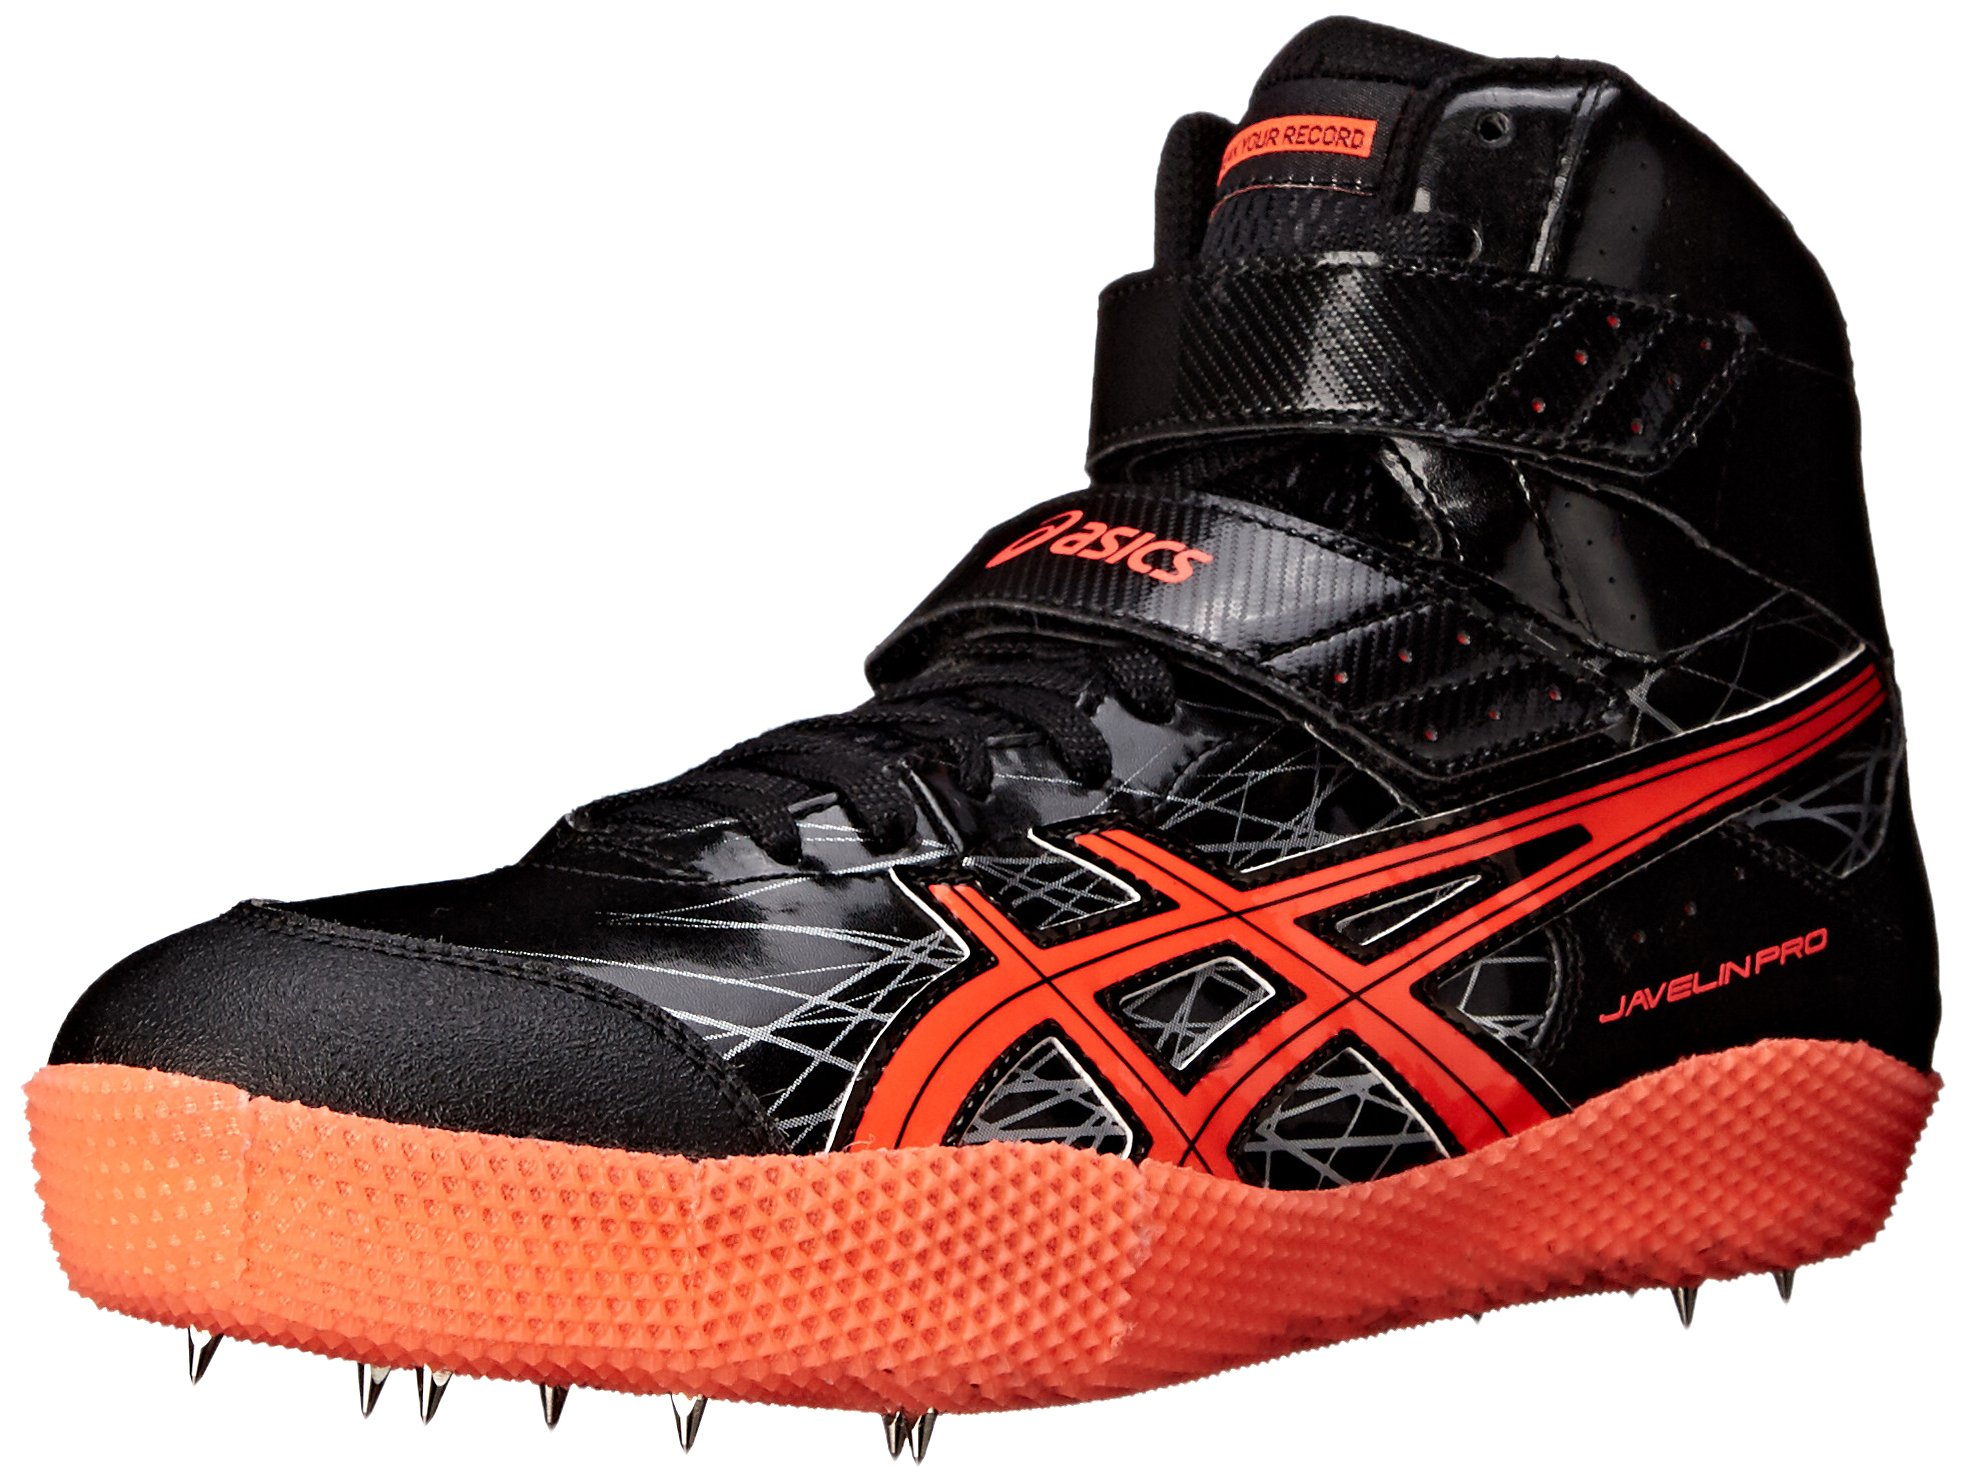 ASICS Men's Javelin Pro-M, Black/Flash Coral/Silver, 6 M US